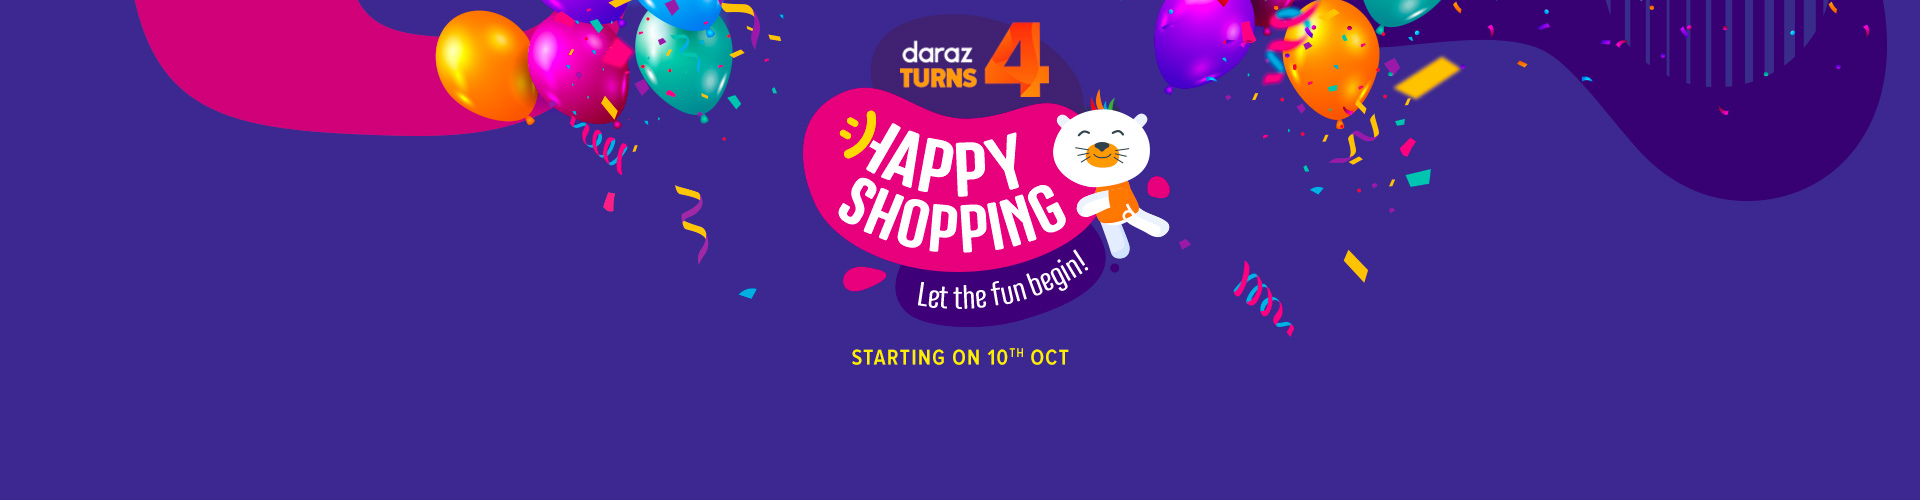 Daraz turns 4 - join the party